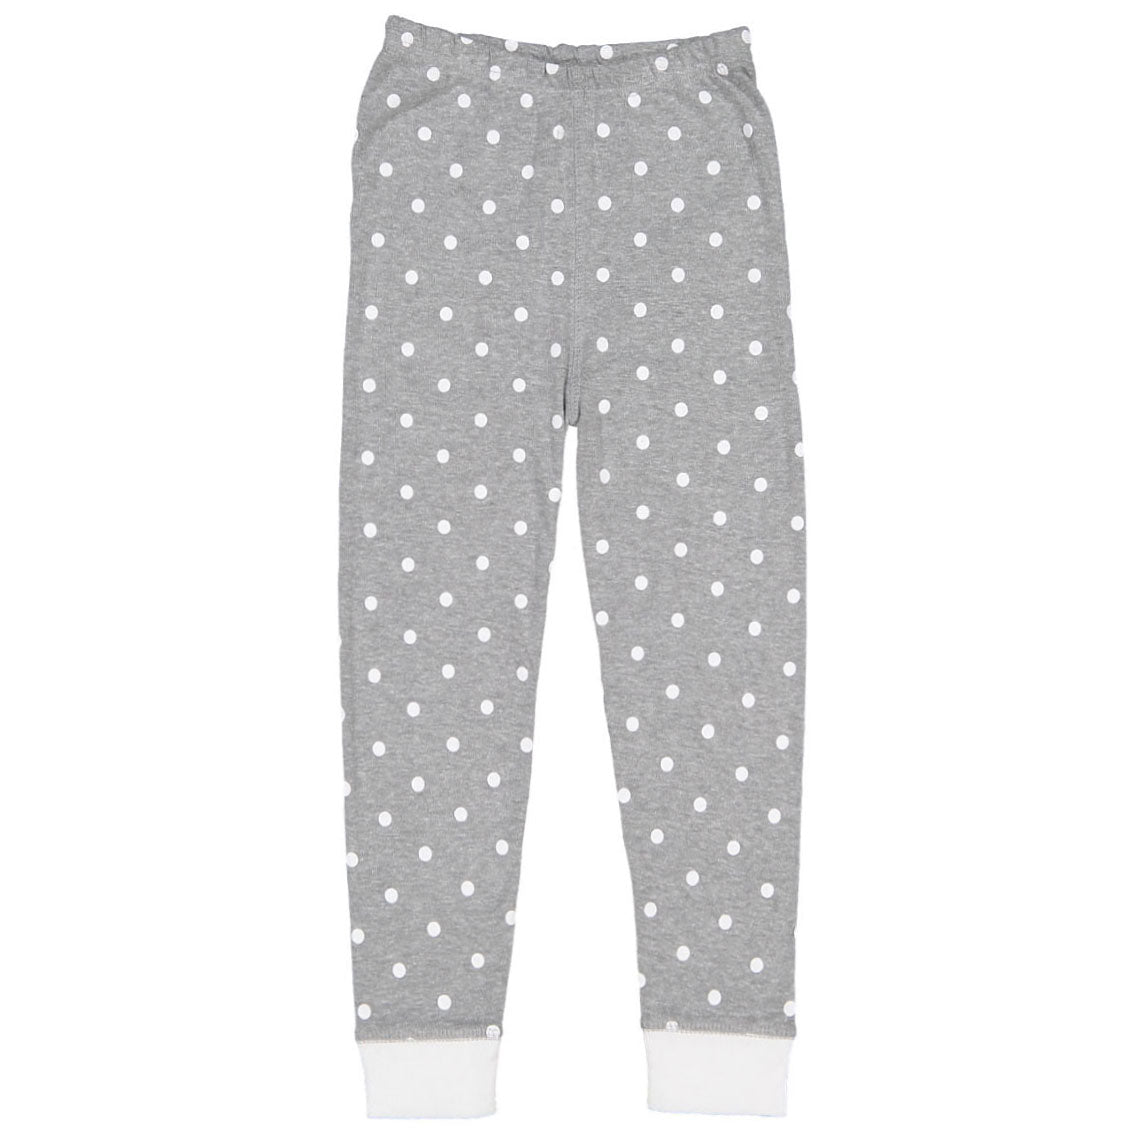 Toddler PJ Pants T236